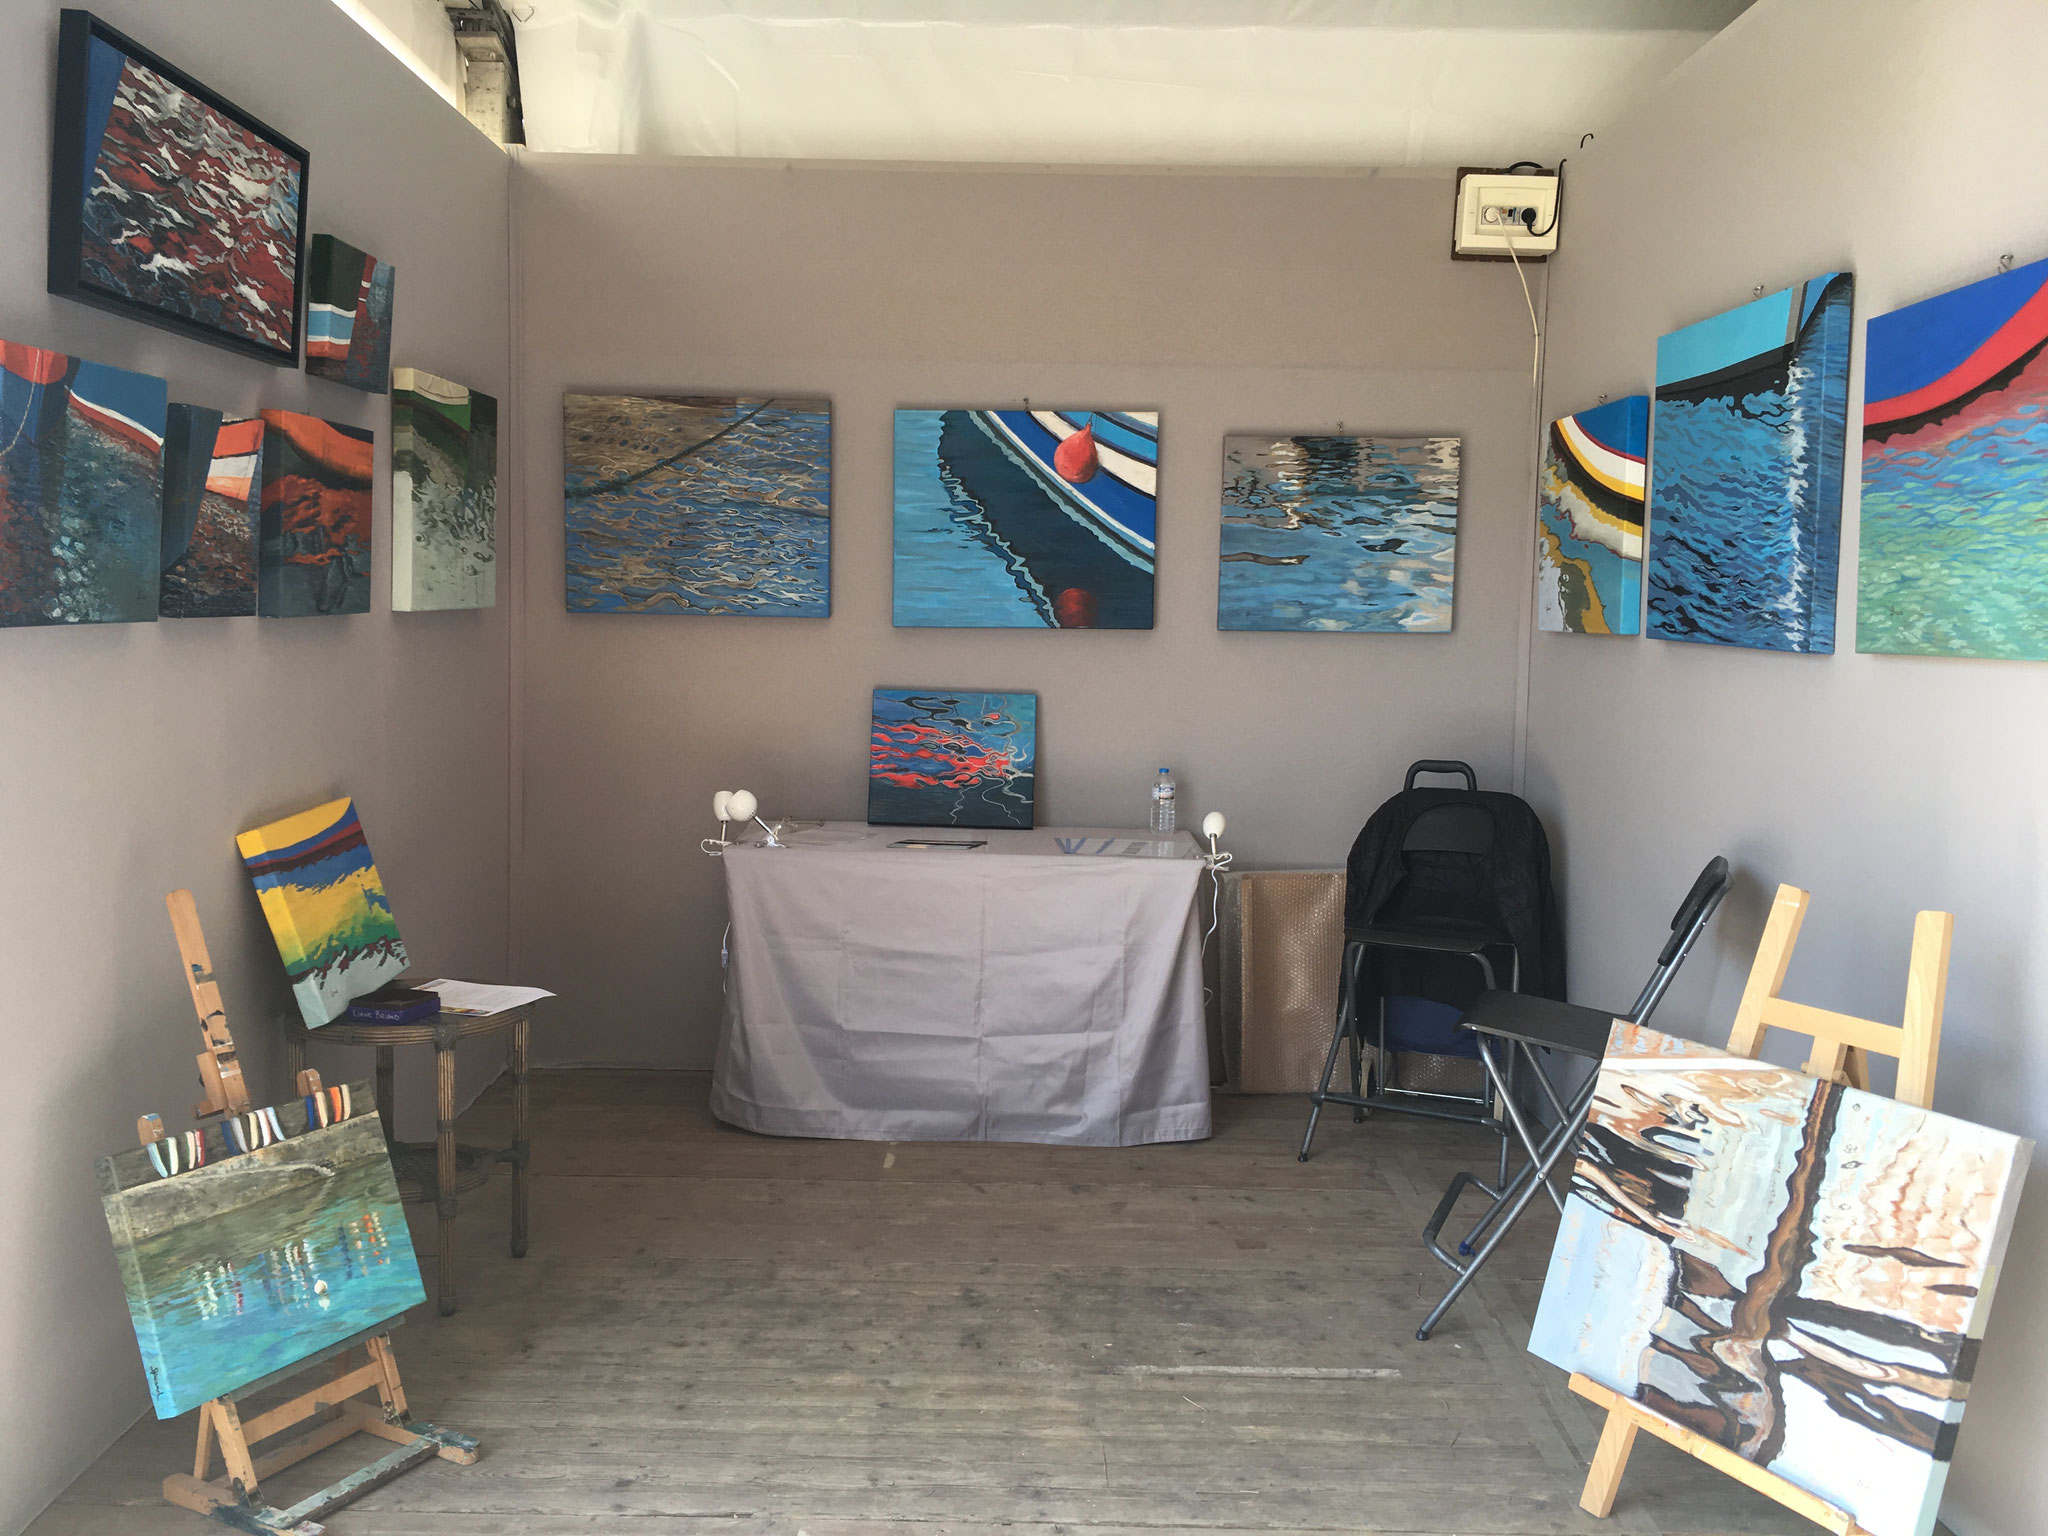 Stand au Salon d'Art Contemporain de Chatou 2019 (5/6)